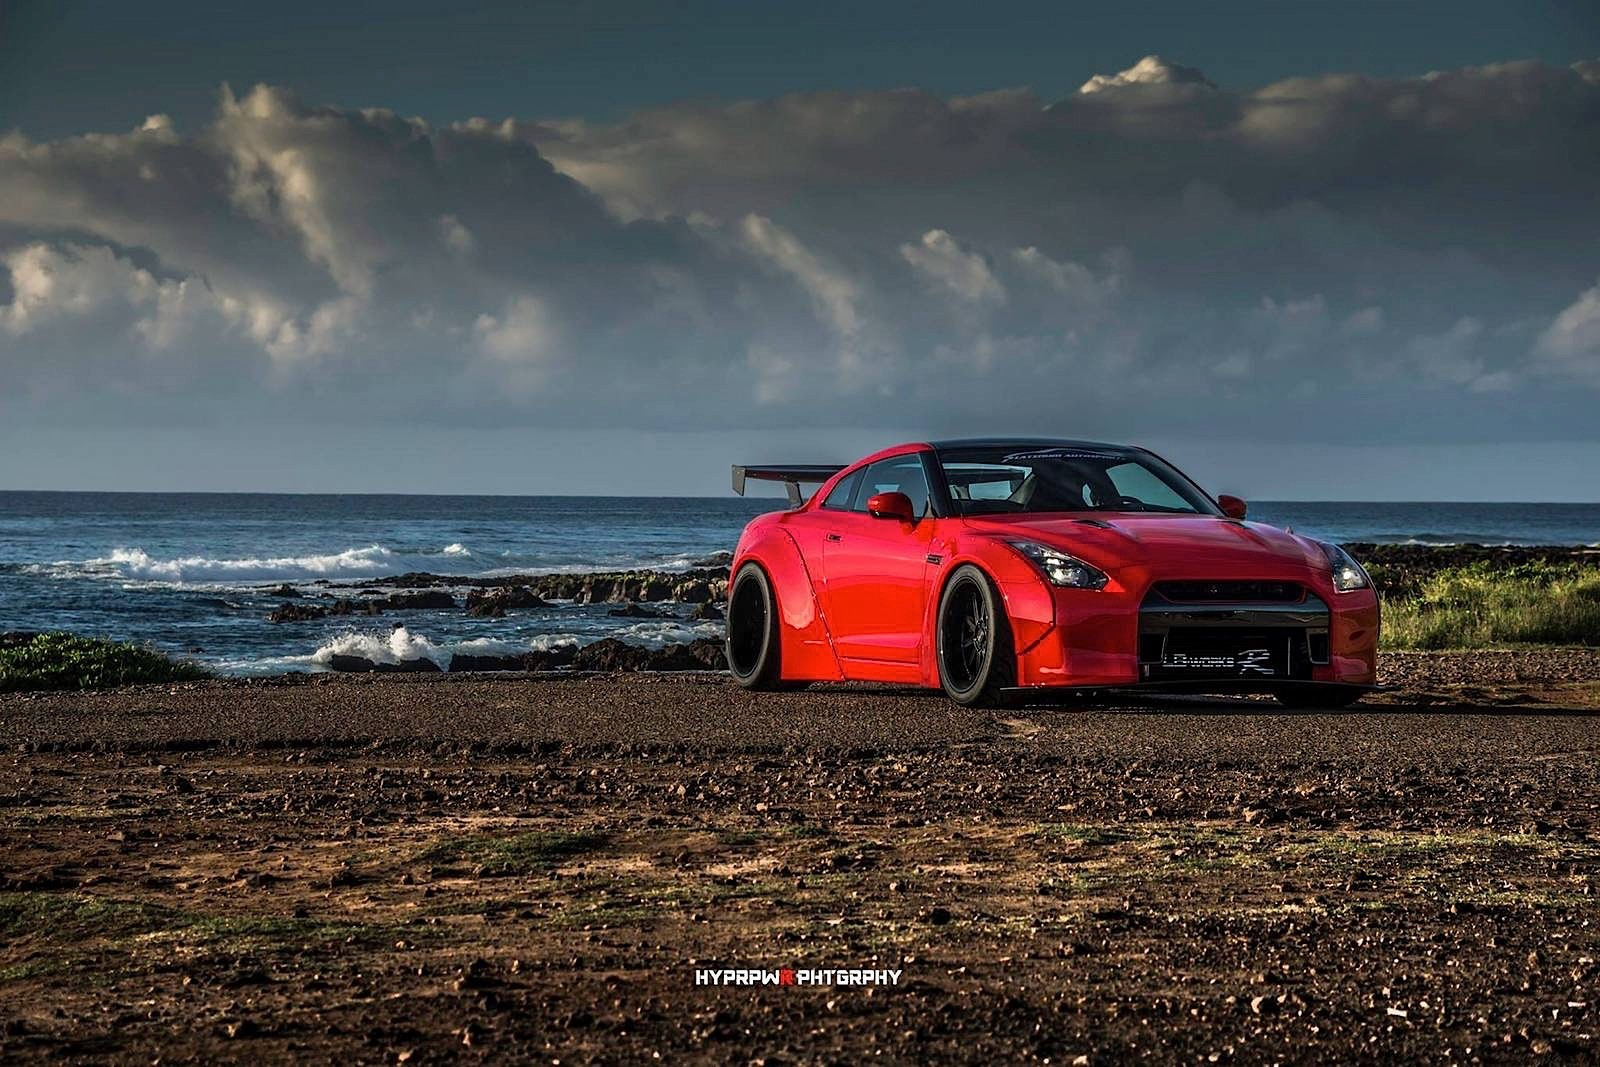 Cars For Sale Oahu >> This Liberty Walk Nissan GT-R Shoot in Oahu is A Moving Volcano - autoevolution